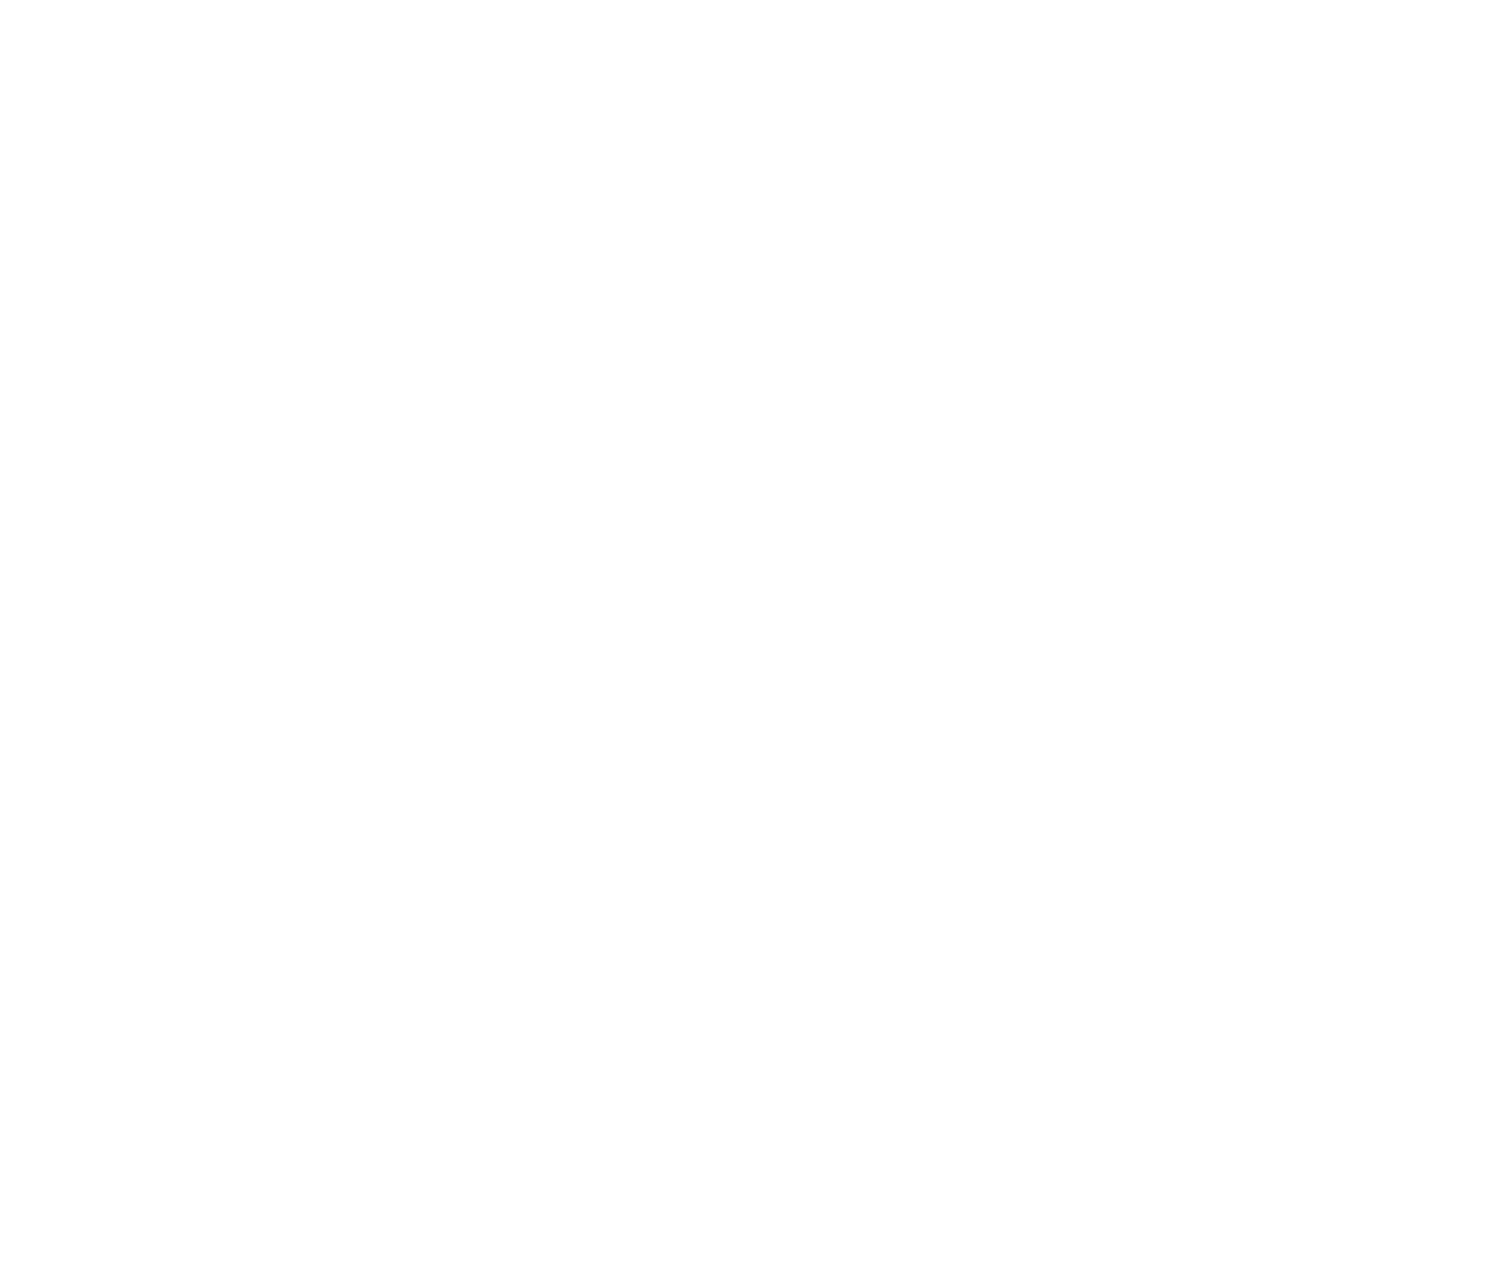 EJ Henderson Guitars and Ukuleles